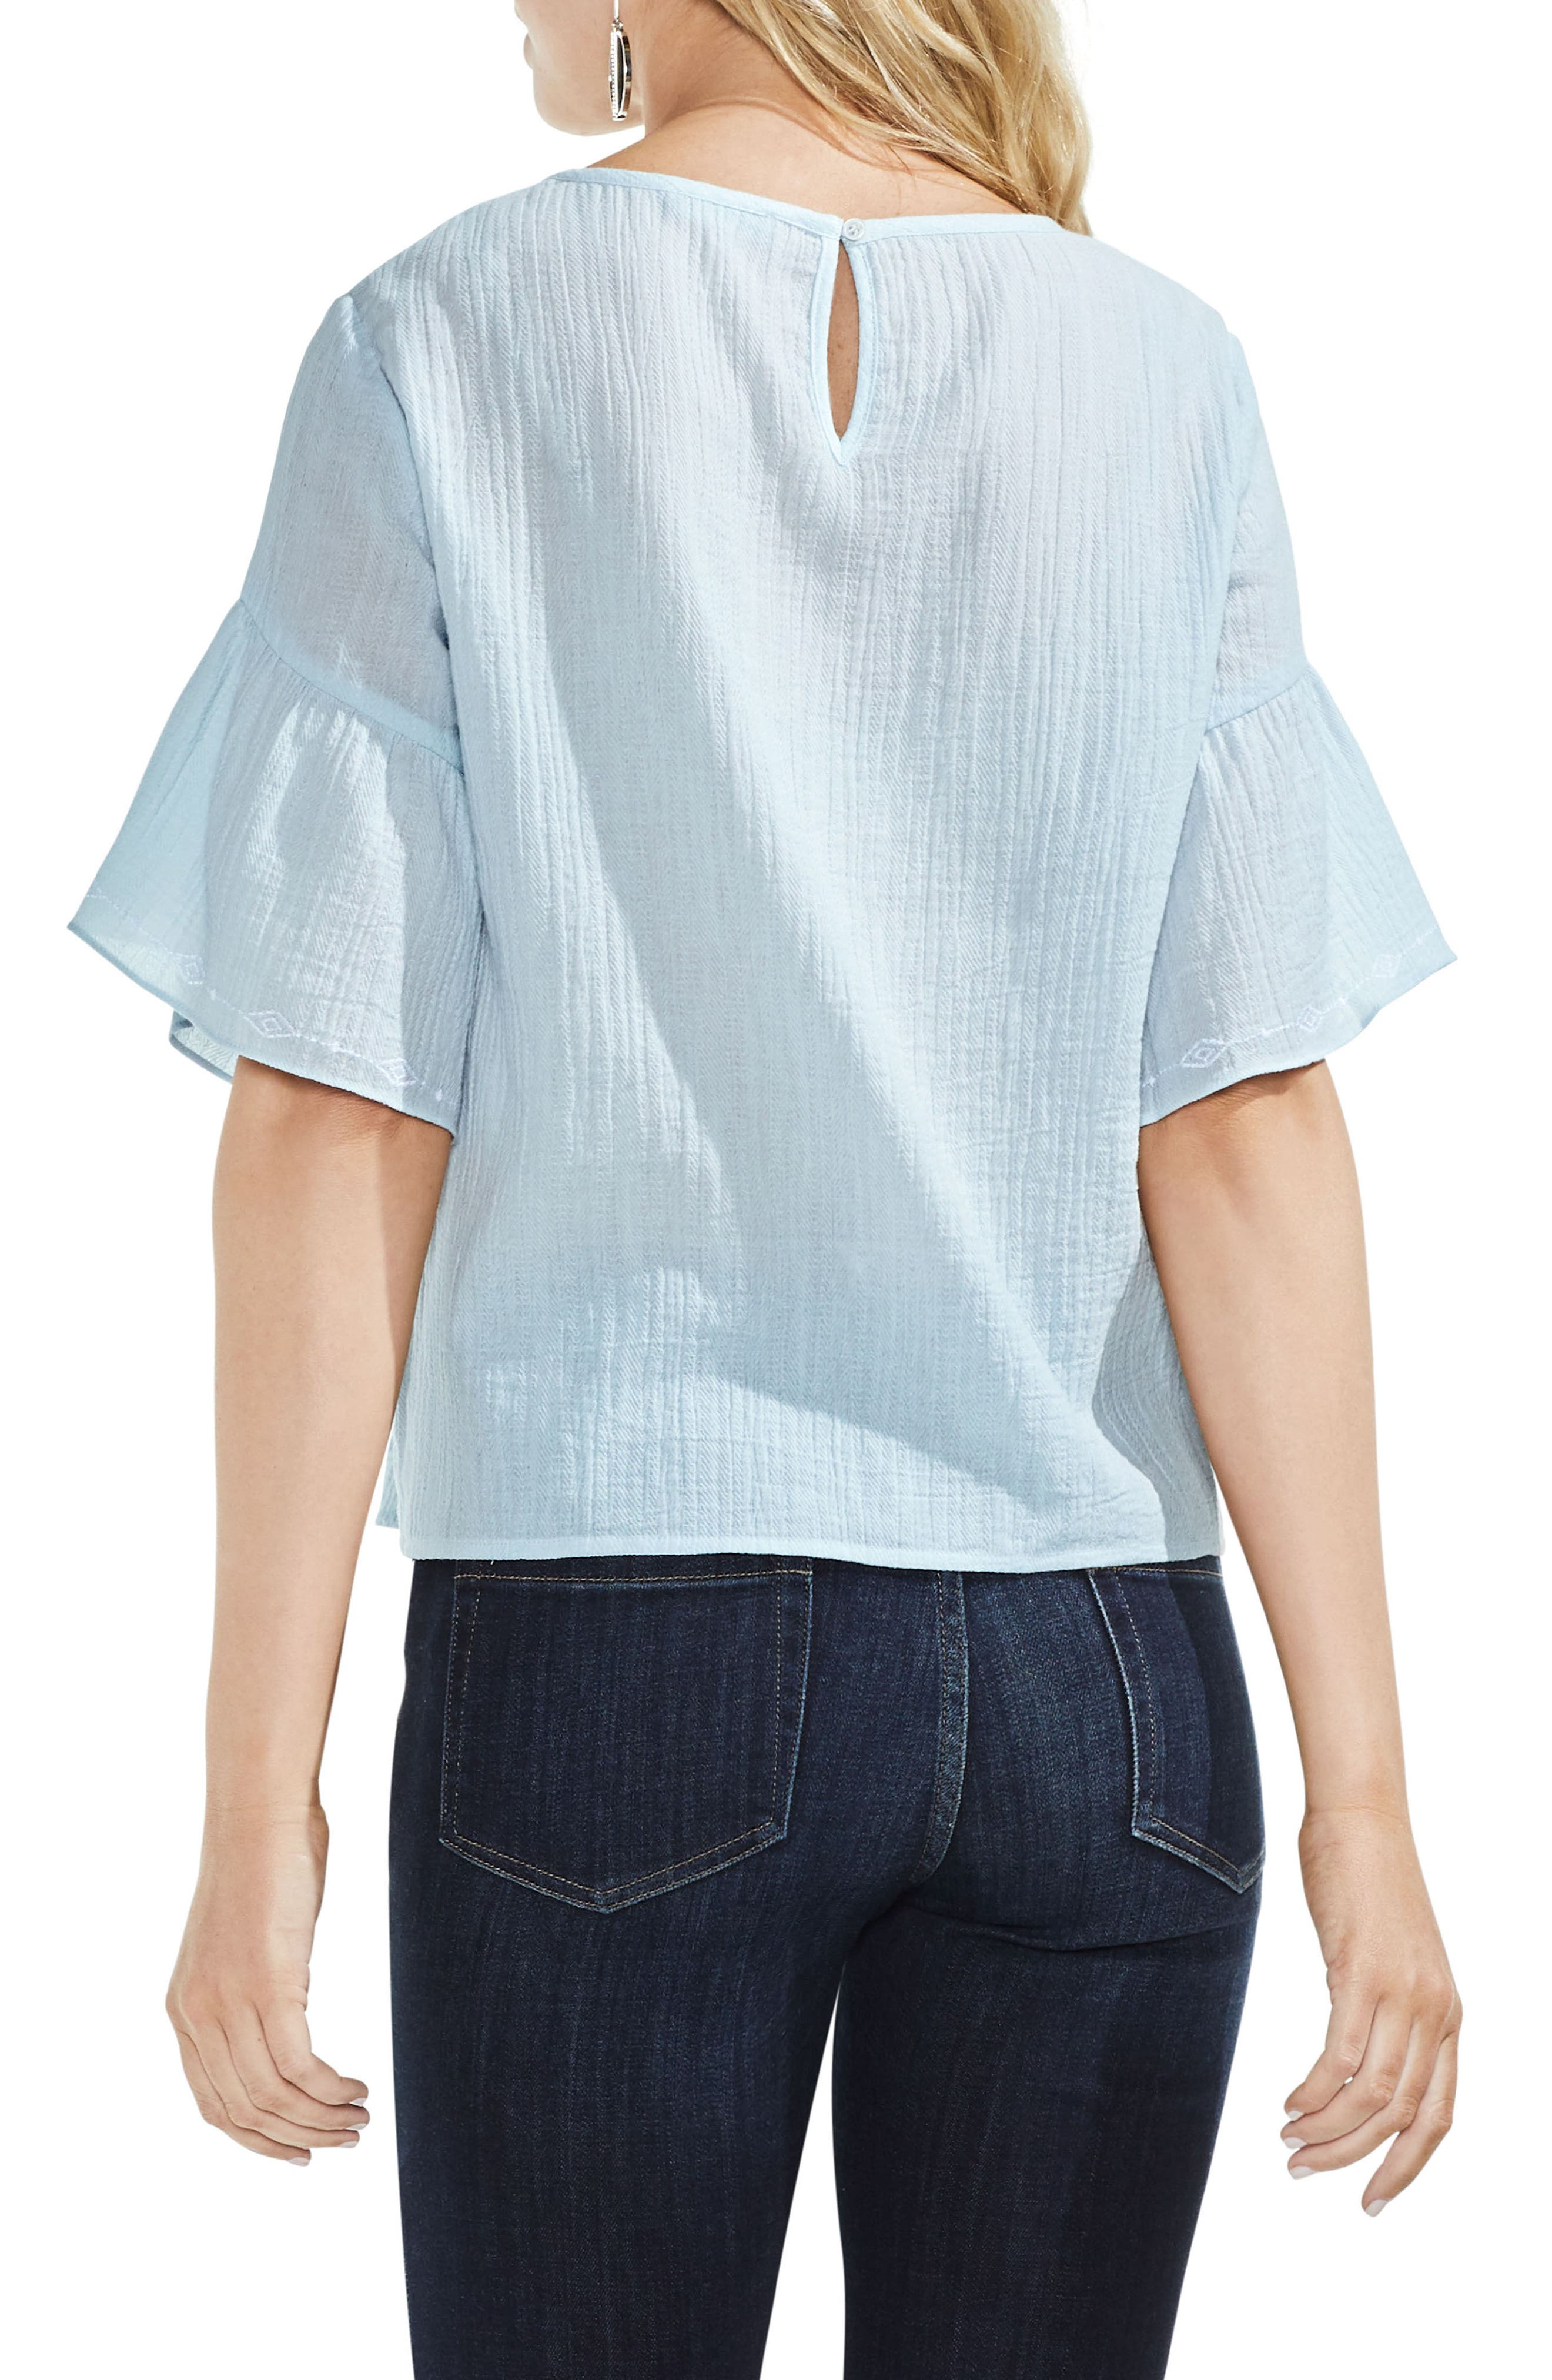 Embroidered Crinkle Cotton Top,                             Alternate thumbnail 4, color,